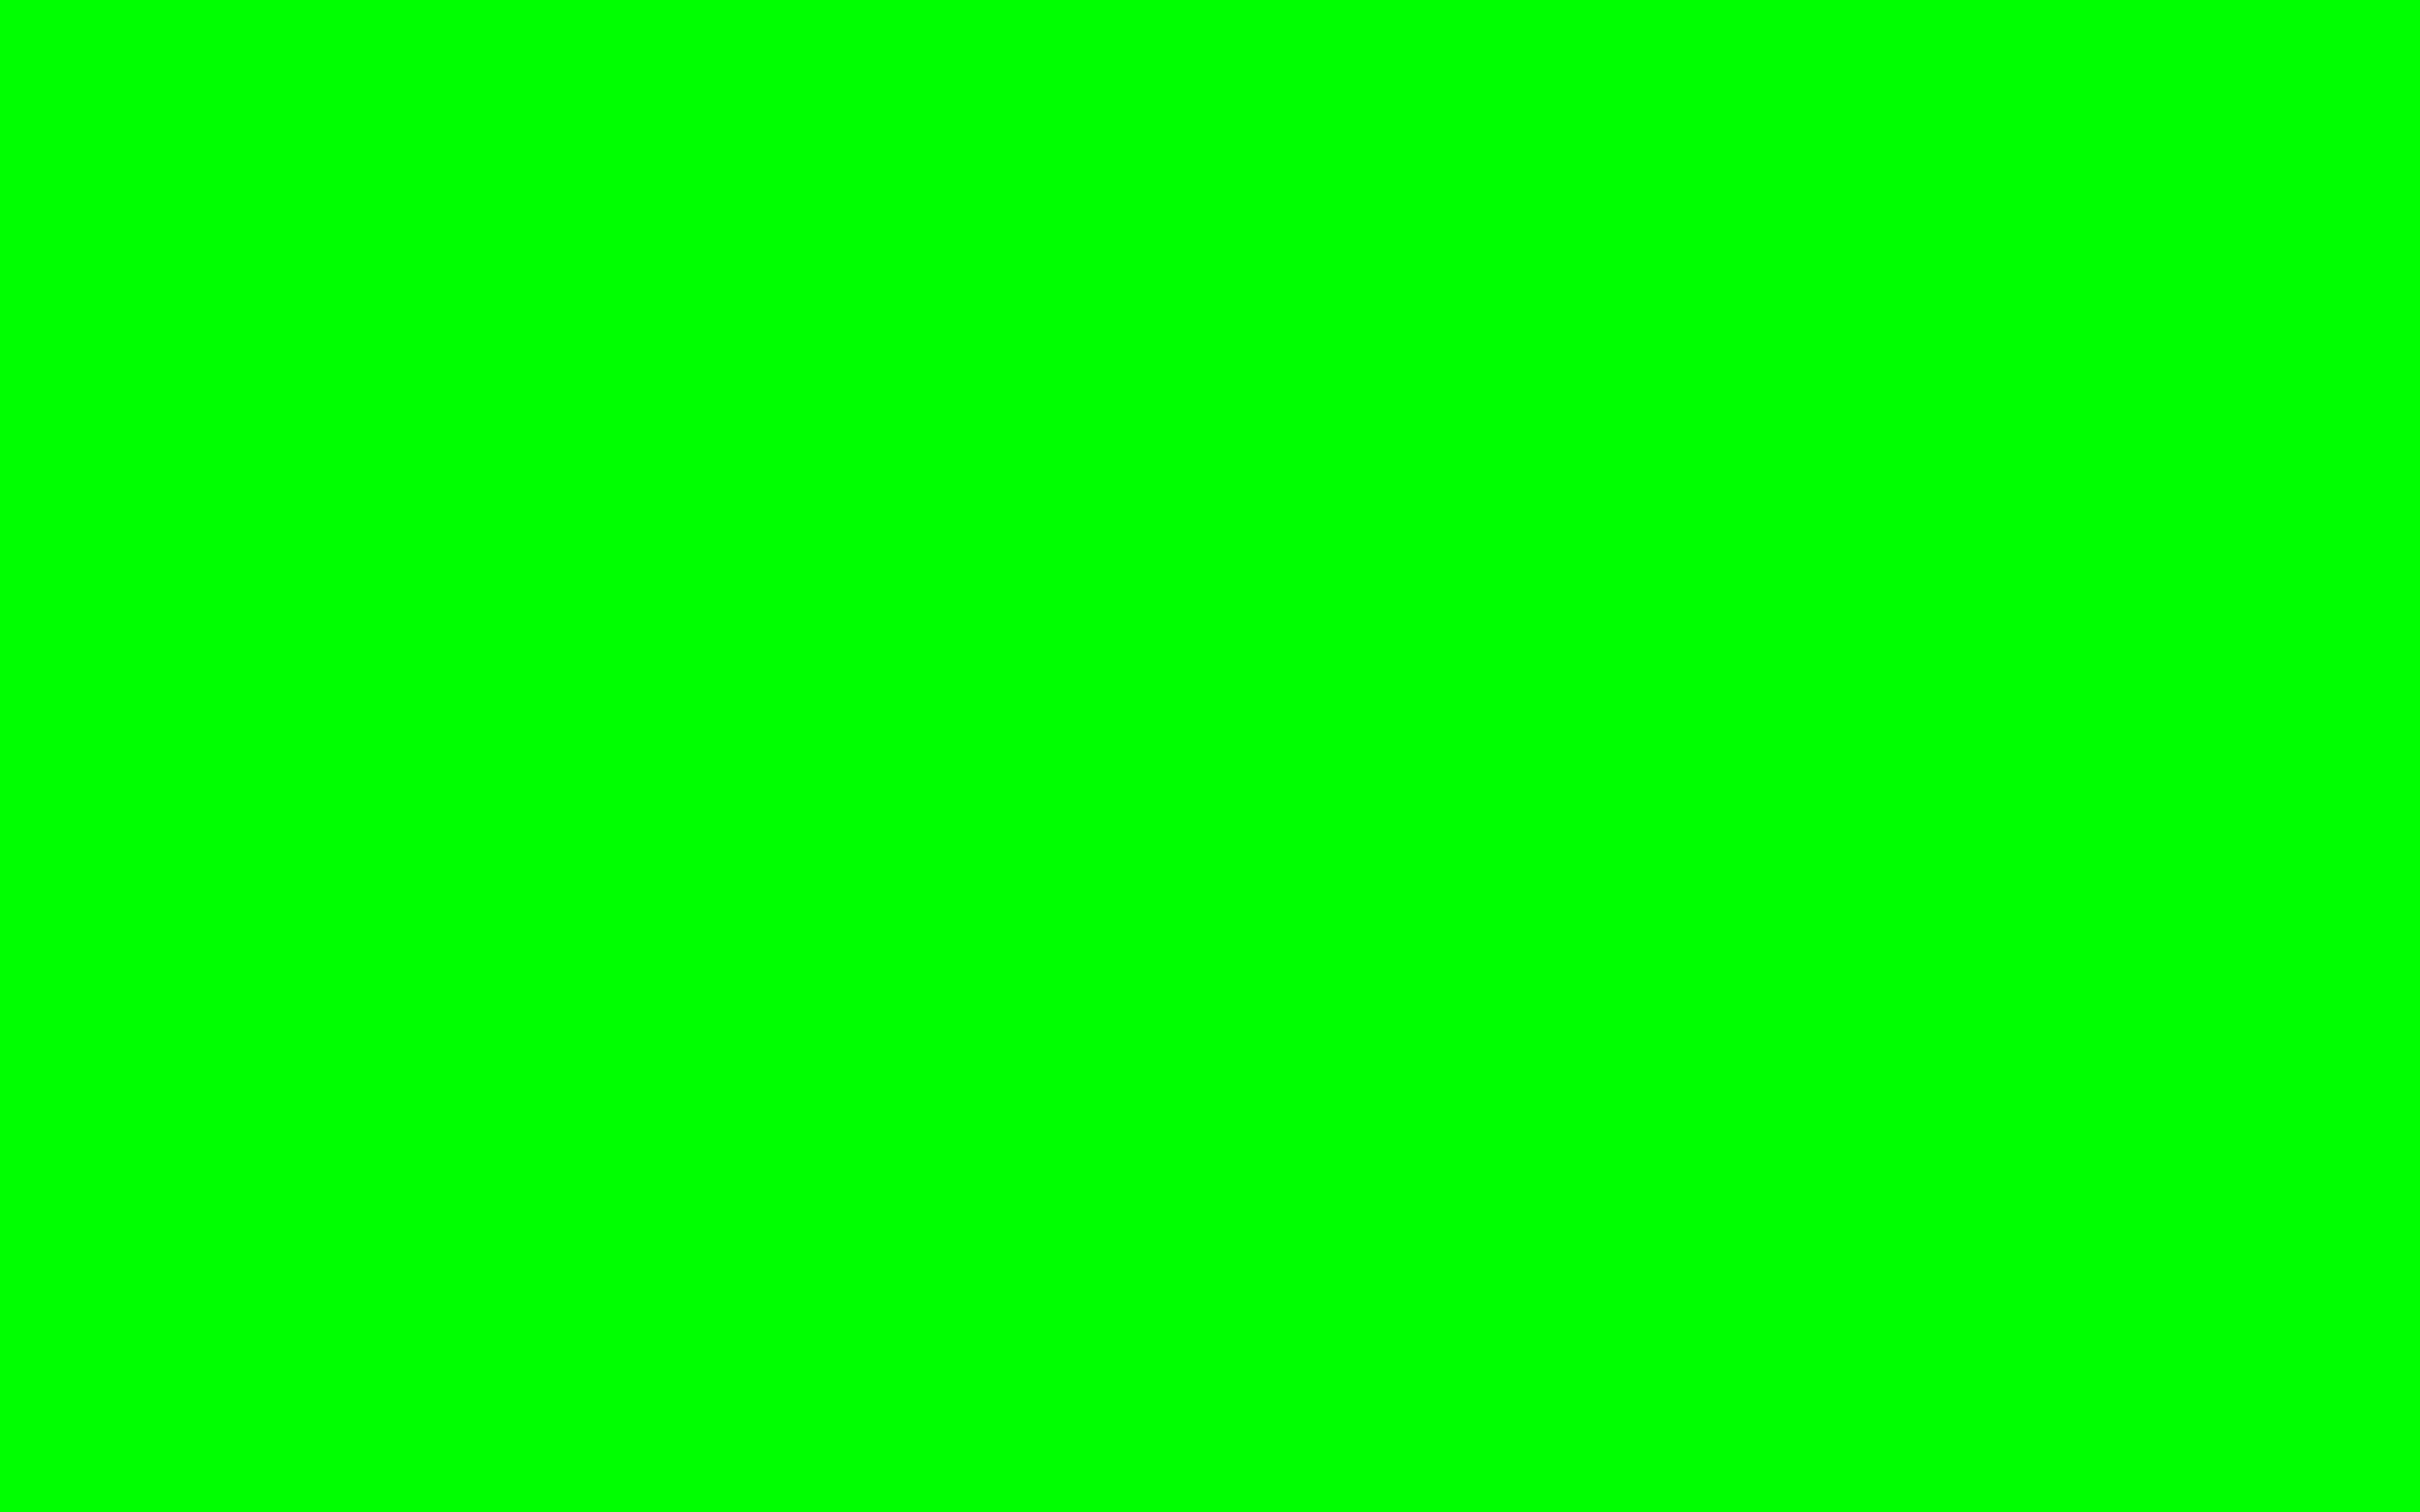 2880x1800 Green X11 Gui Green Solid Color Background